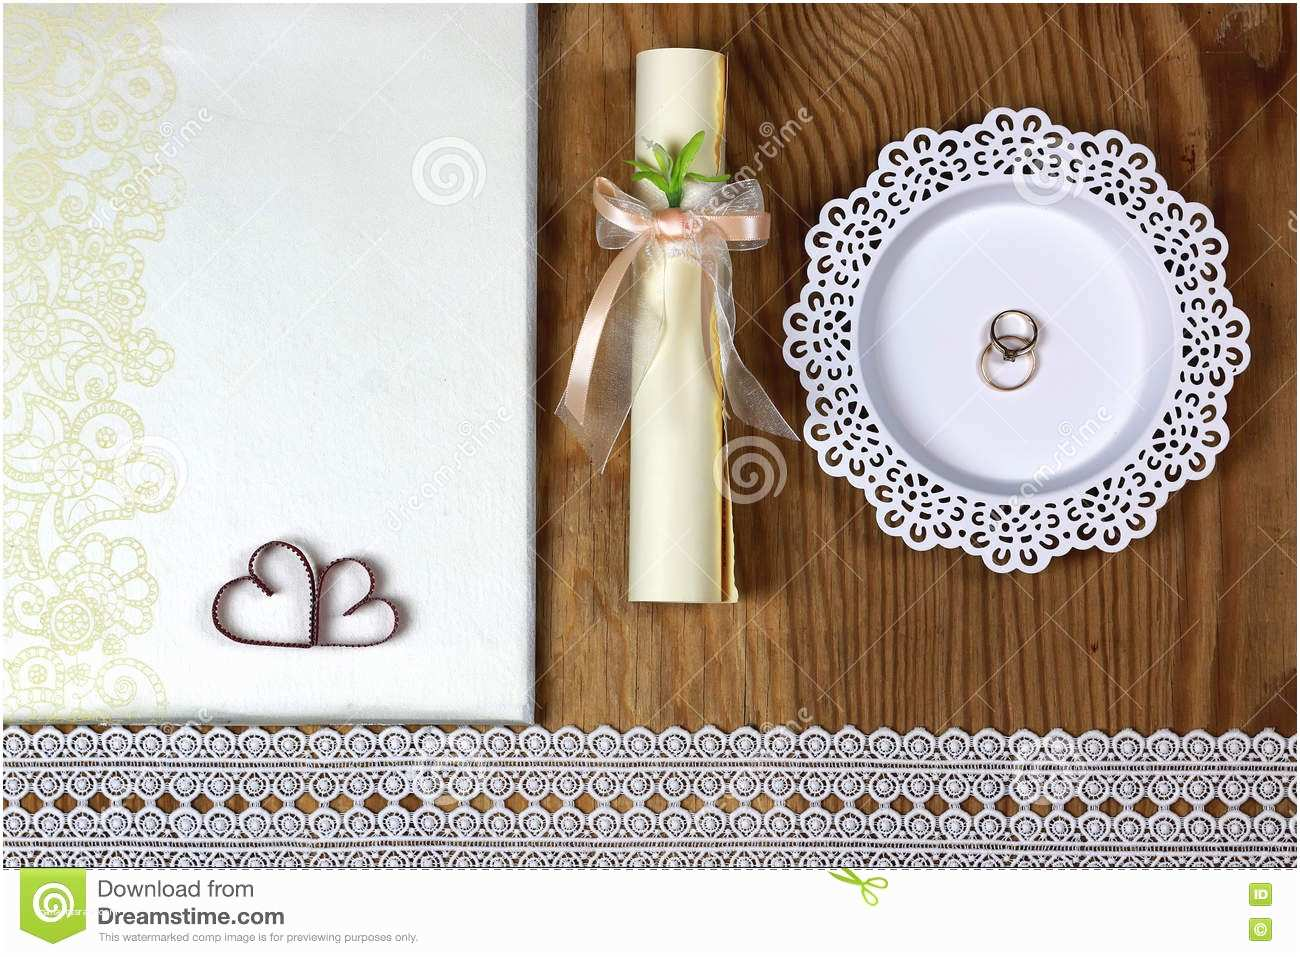 Time Frame for Wedding Invitations Wedding Accessories and Invitations to Frame Light Wooden